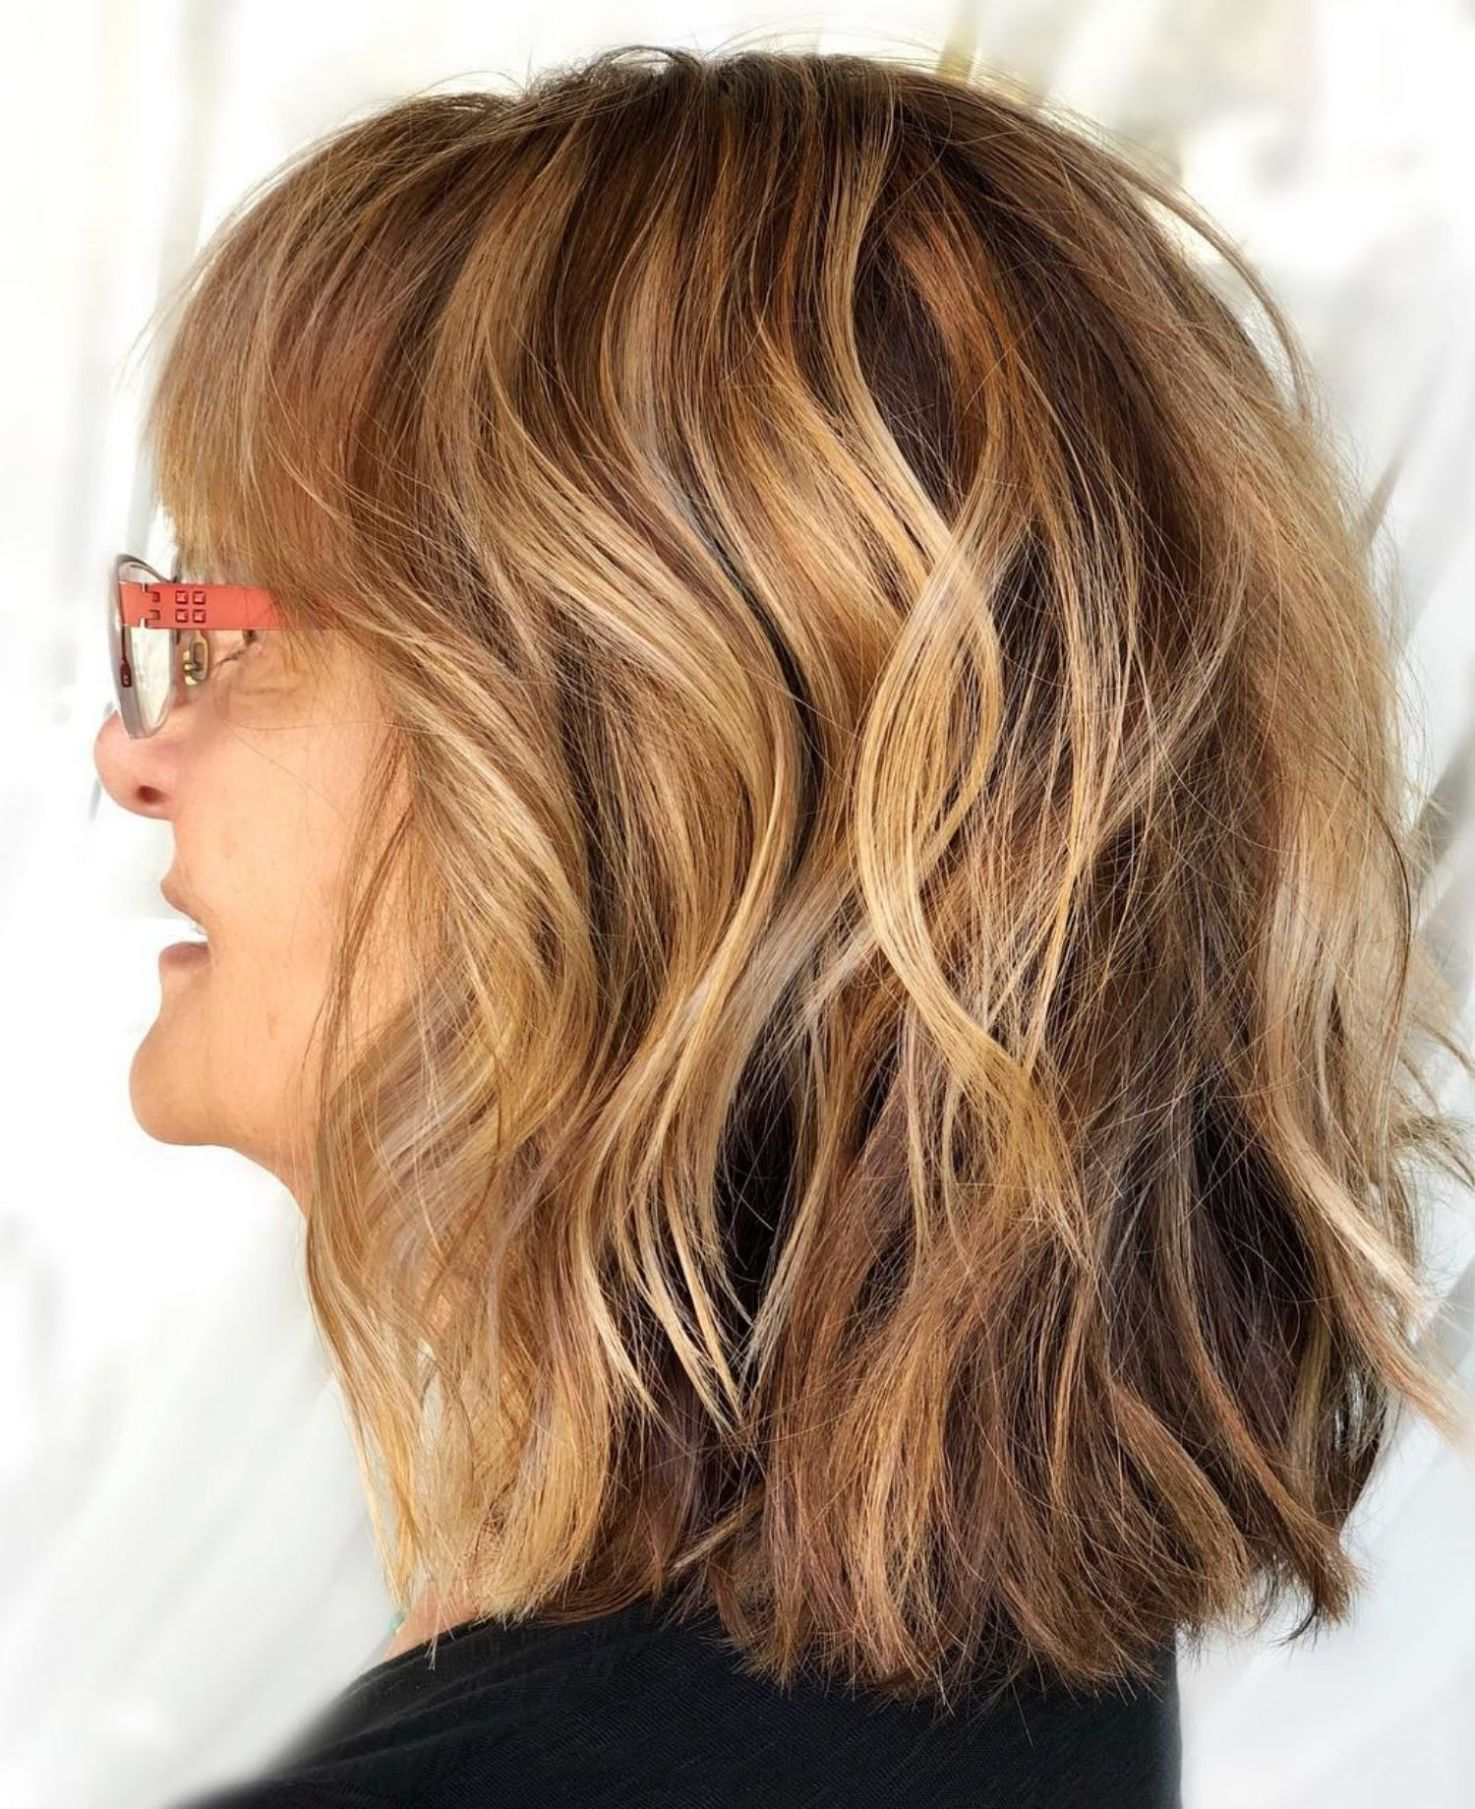 80 Best Modern Hairstyles And Haircuts For Women Over 50 Wavy Hairstyles Medium Modern Hairstyles Thick Hair Styles